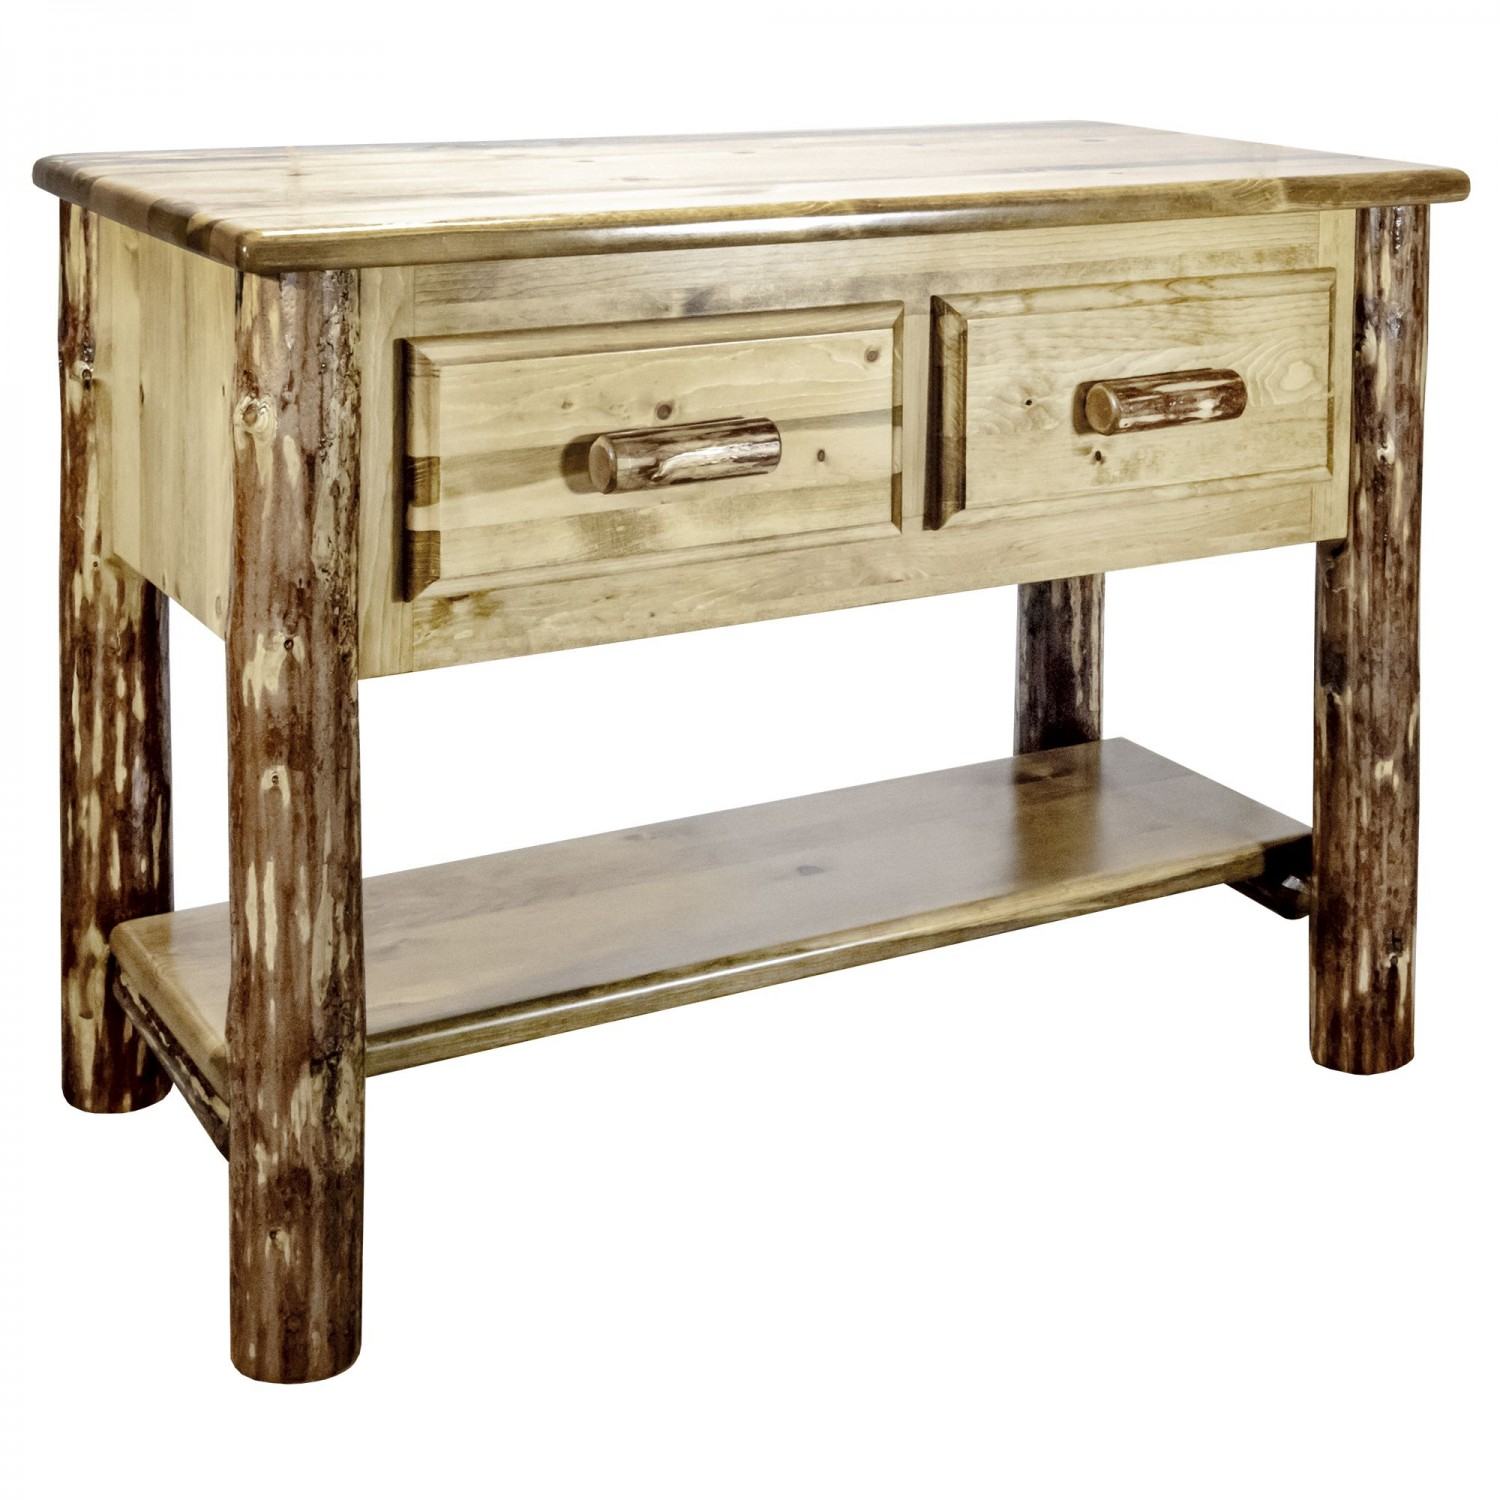 Rustic Pine Console Table w/ 2 Drawers (MW)